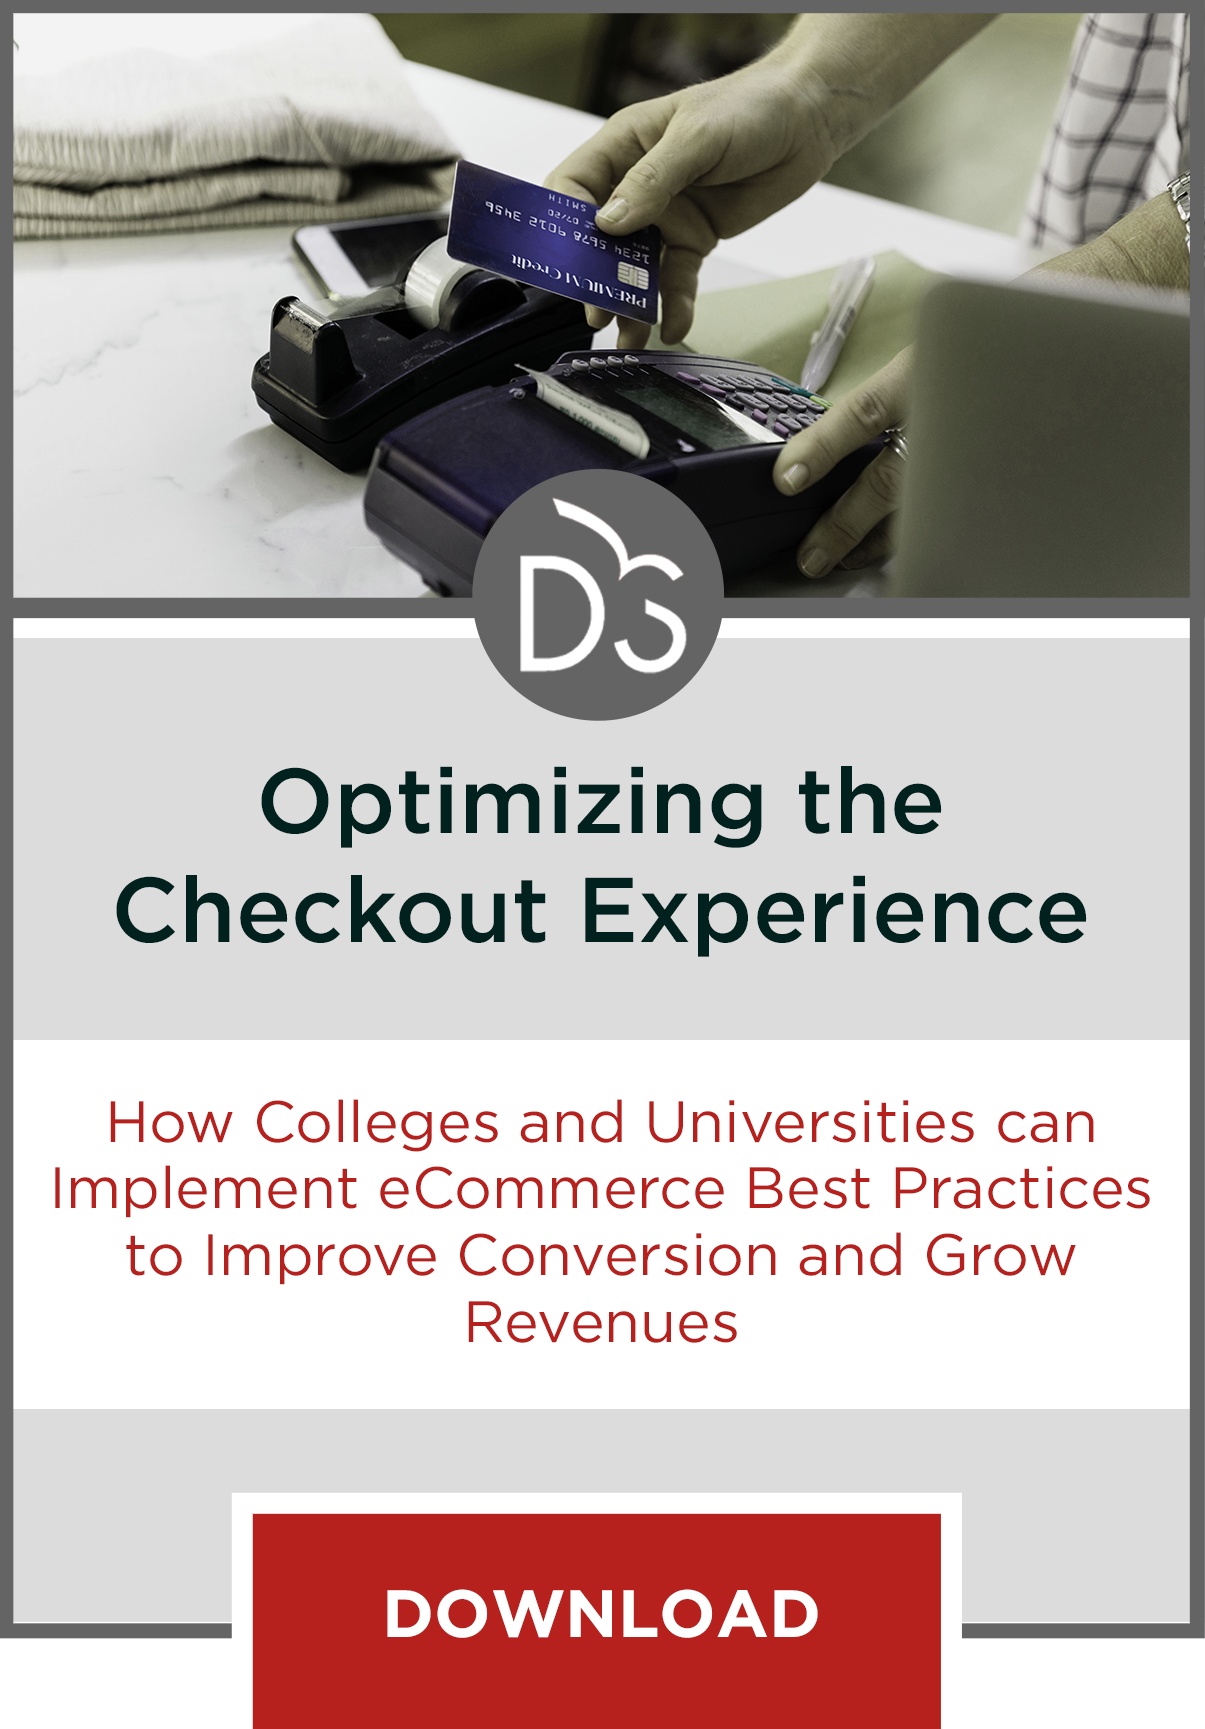 Checkout Optimization for Colleges and Universities